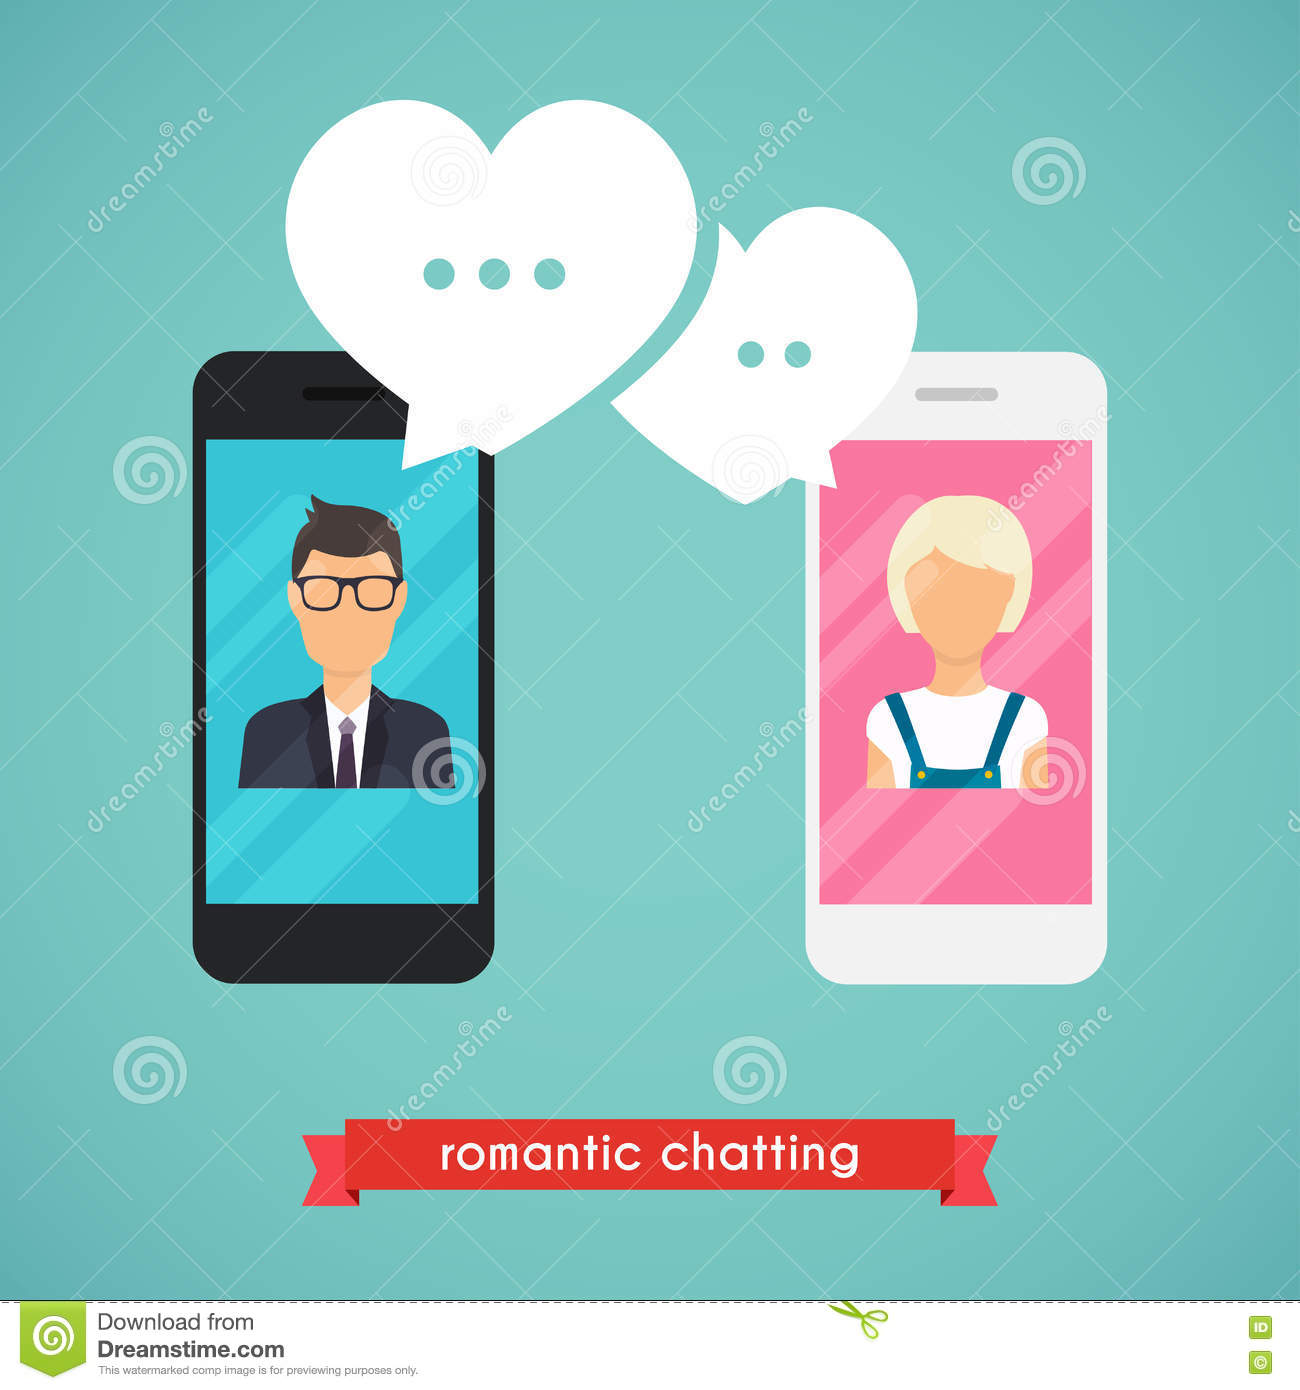 Cell phone dating websites